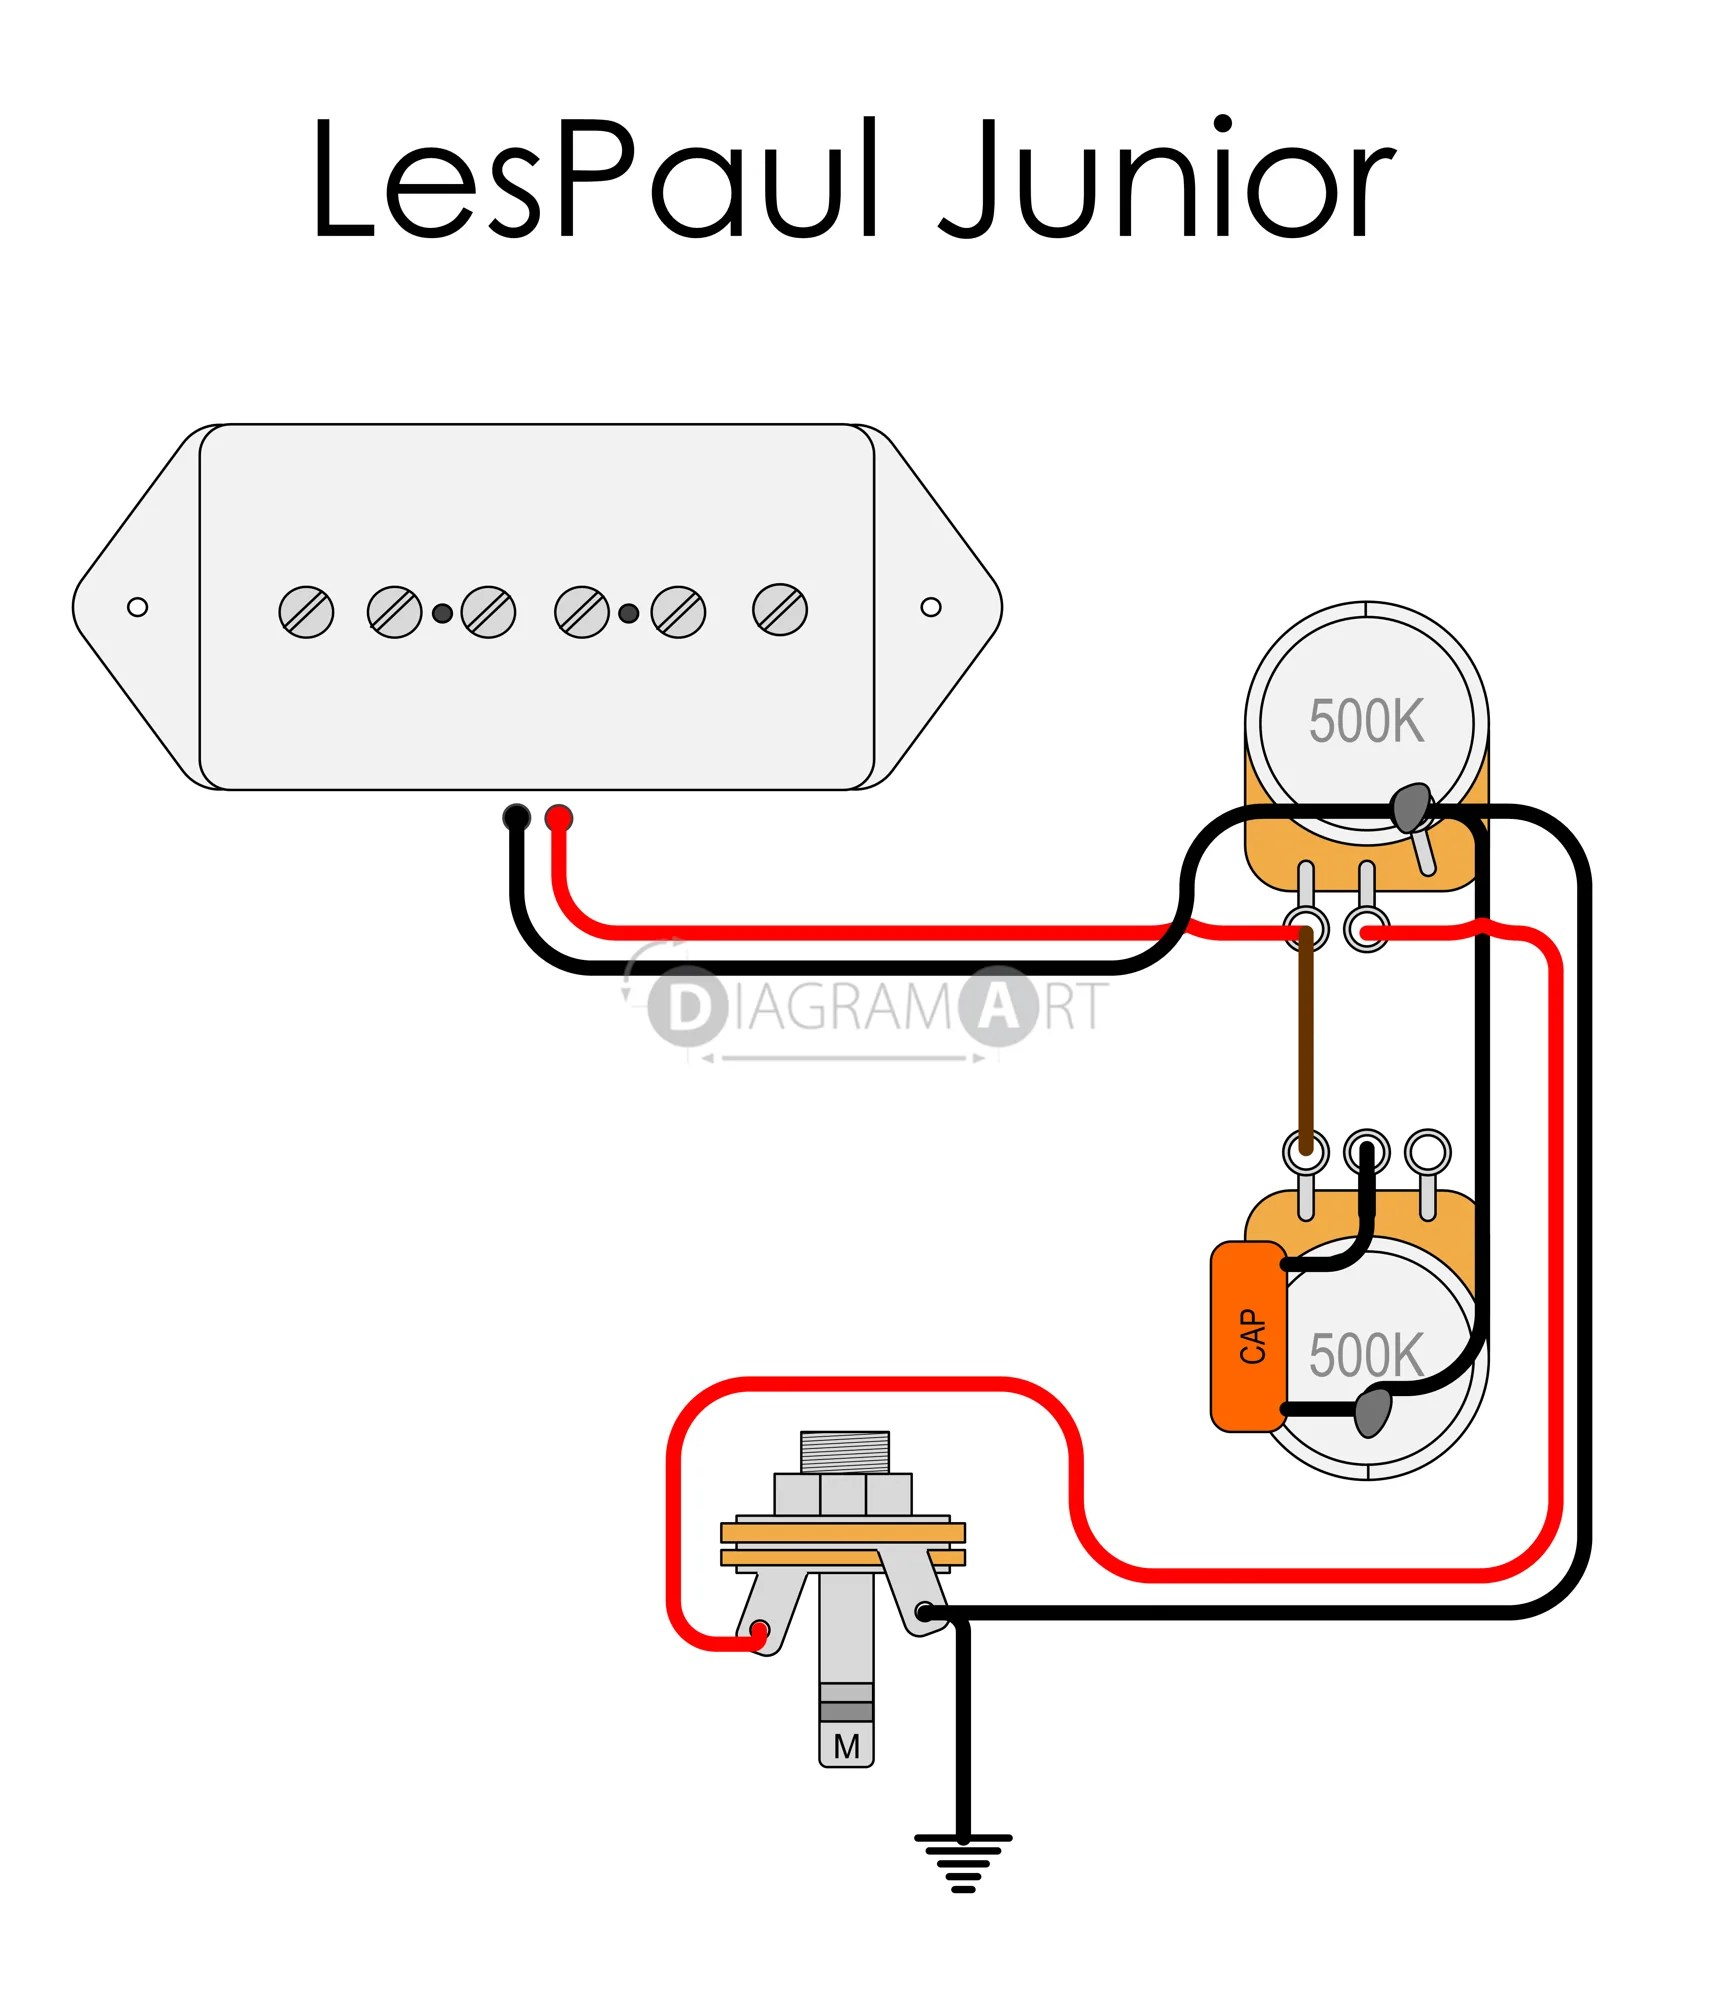 guitar wiring circuit diagram wiring diagram database the guitar wiring blog diagrams and tips gibson les source gibson les paul toggle switch  [ 1730 x 2000 Pixel ]